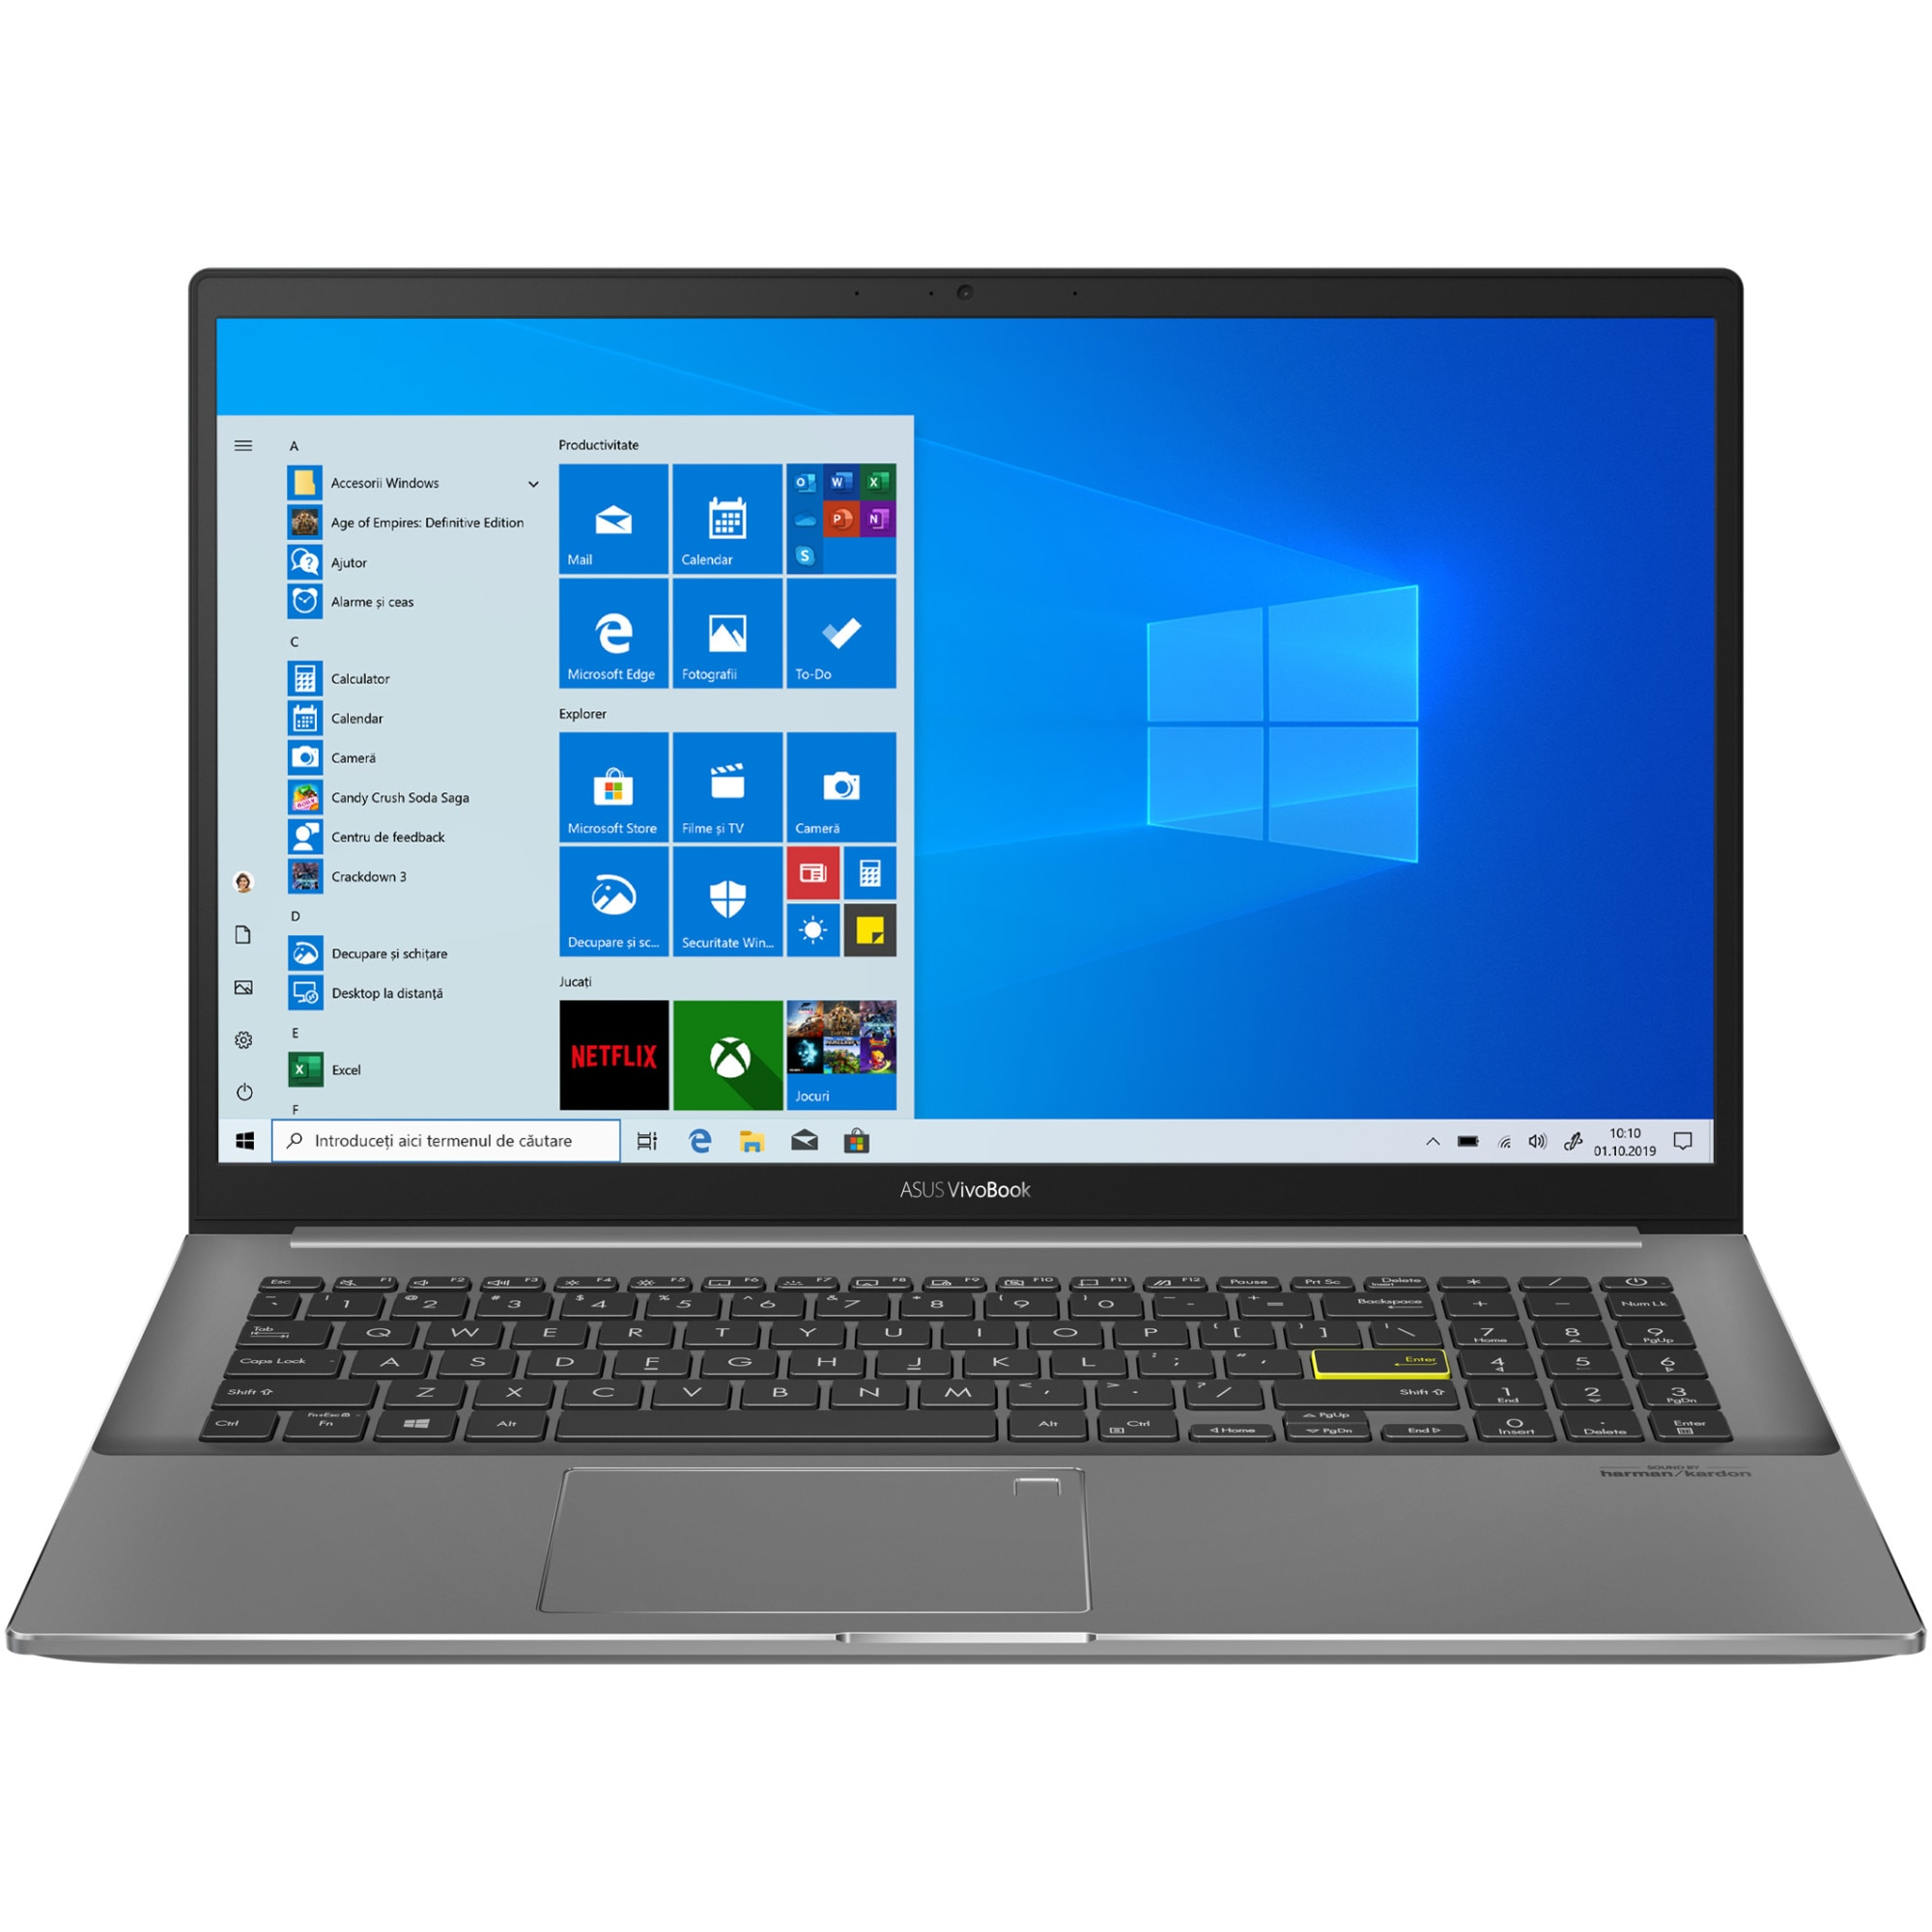 "Fotografie Laptop ASUS VivoBook S15 M533IA cu procesor AMD Ryzen™ 7 4700U pana la 4.10 GHz, 15.6"", Full HD, 16GB, 512GB SSD, AMD Radeon™ Graphics, Windows 10 Home, Star Grey"